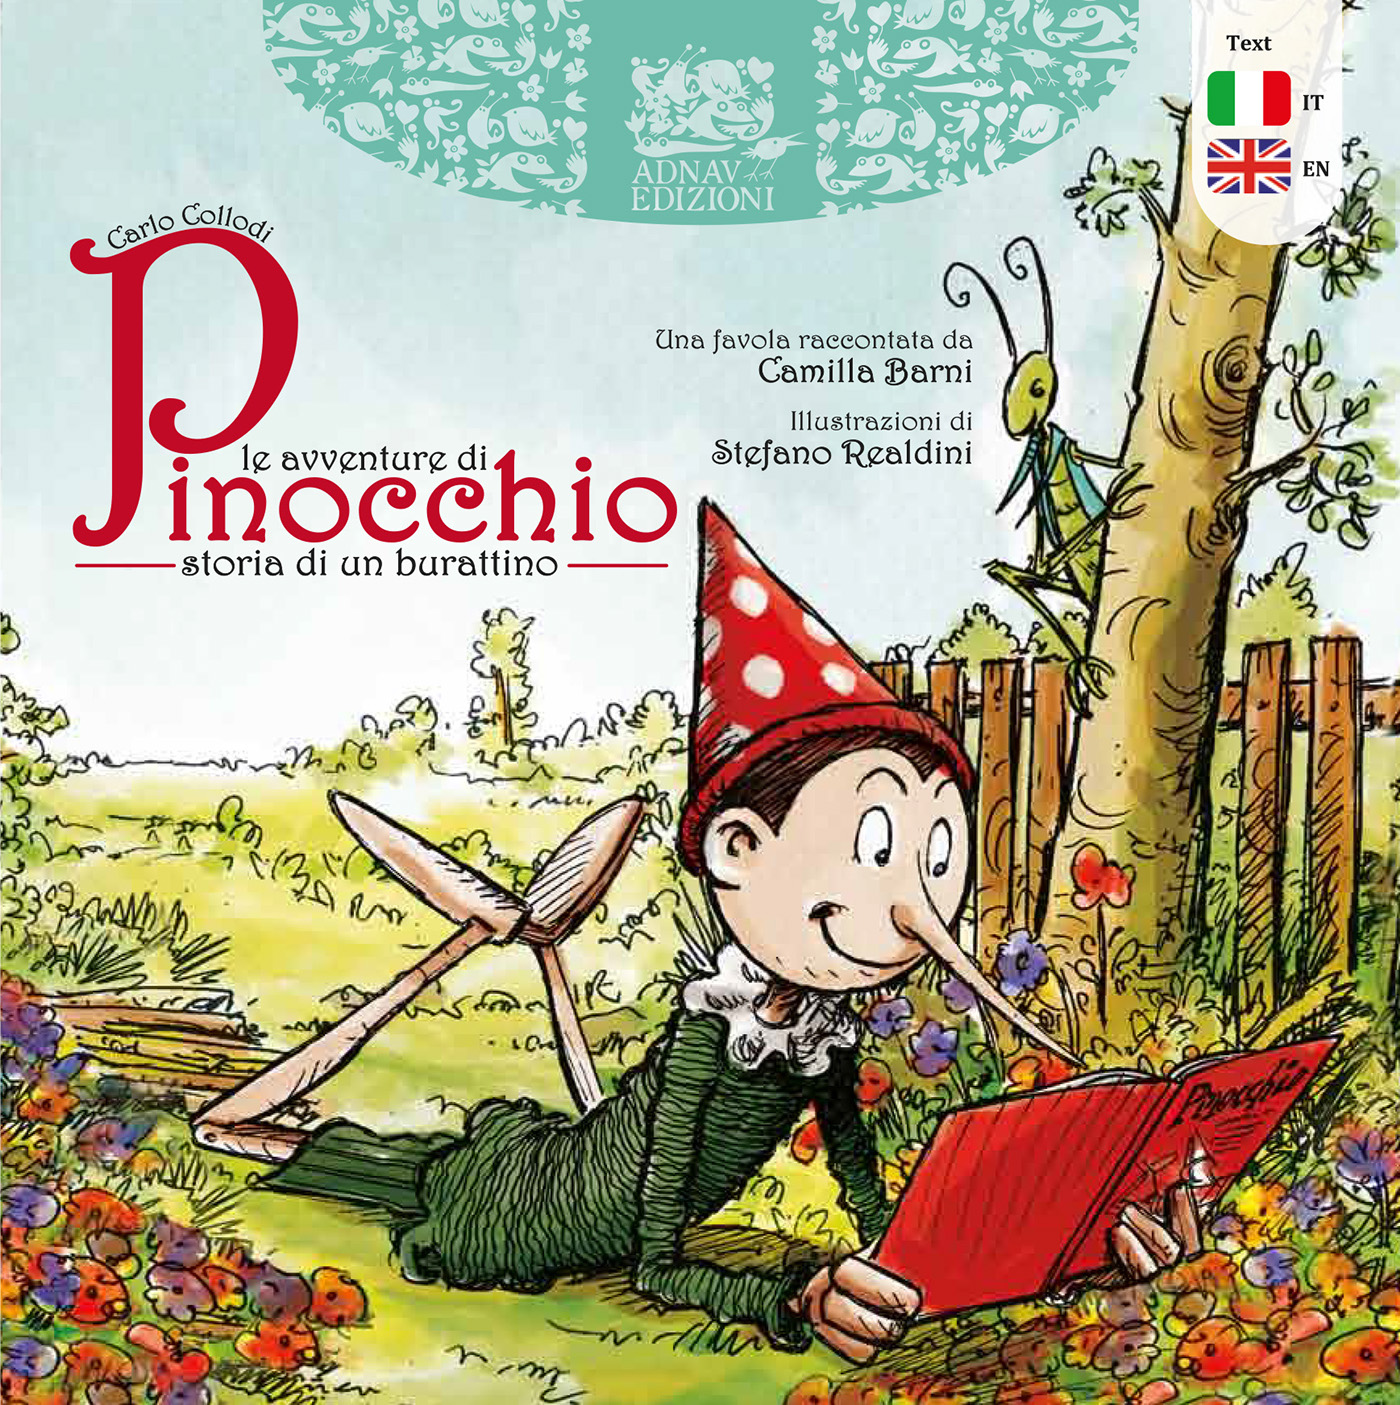 The Adventures of Pinocchio - Book illustration on Behance